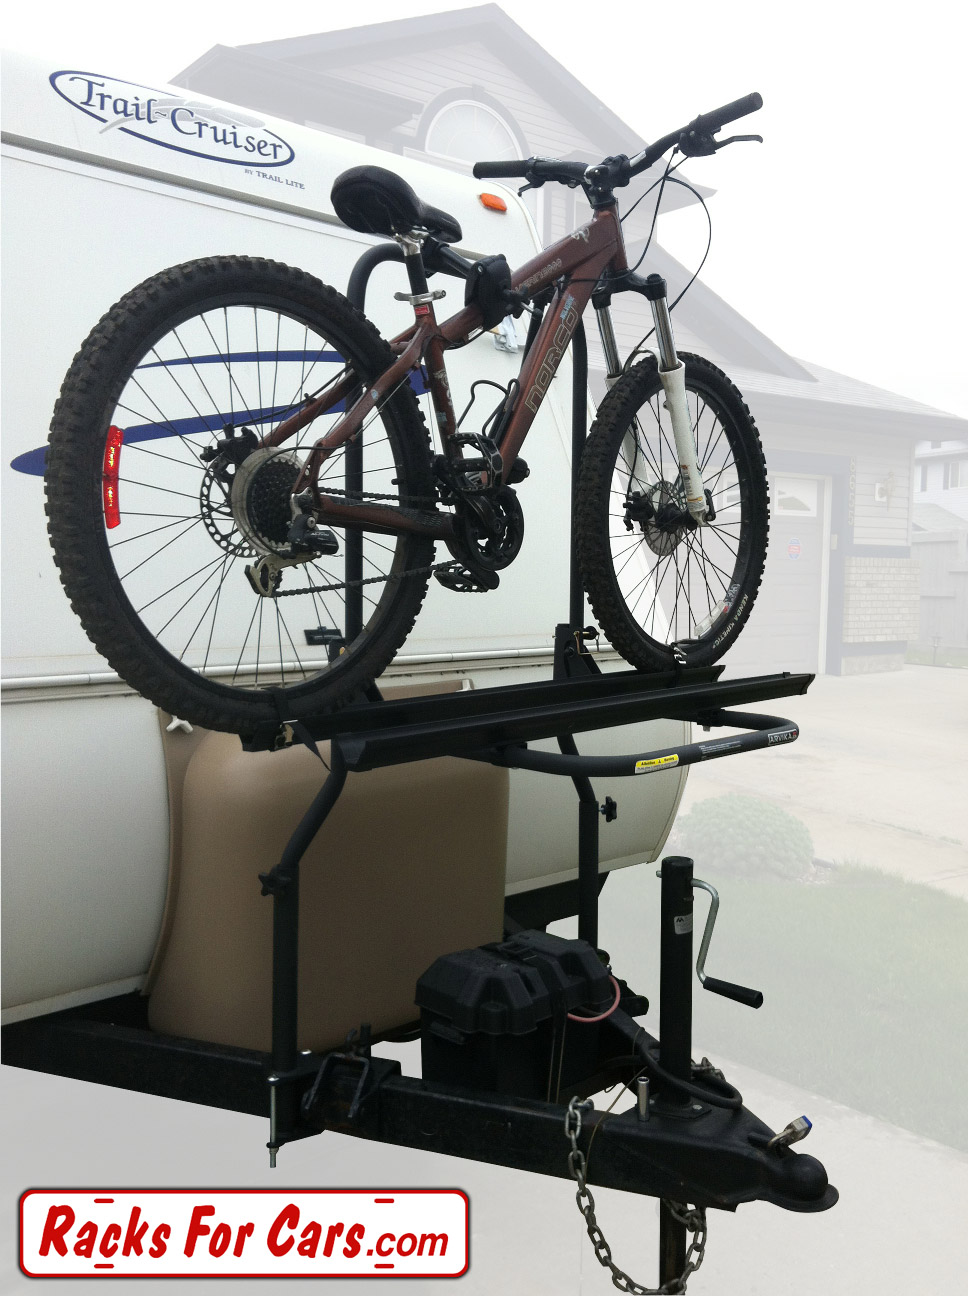 Arvika Rv Bike Racks Carry Your Bicycles On Rvs And Fifth